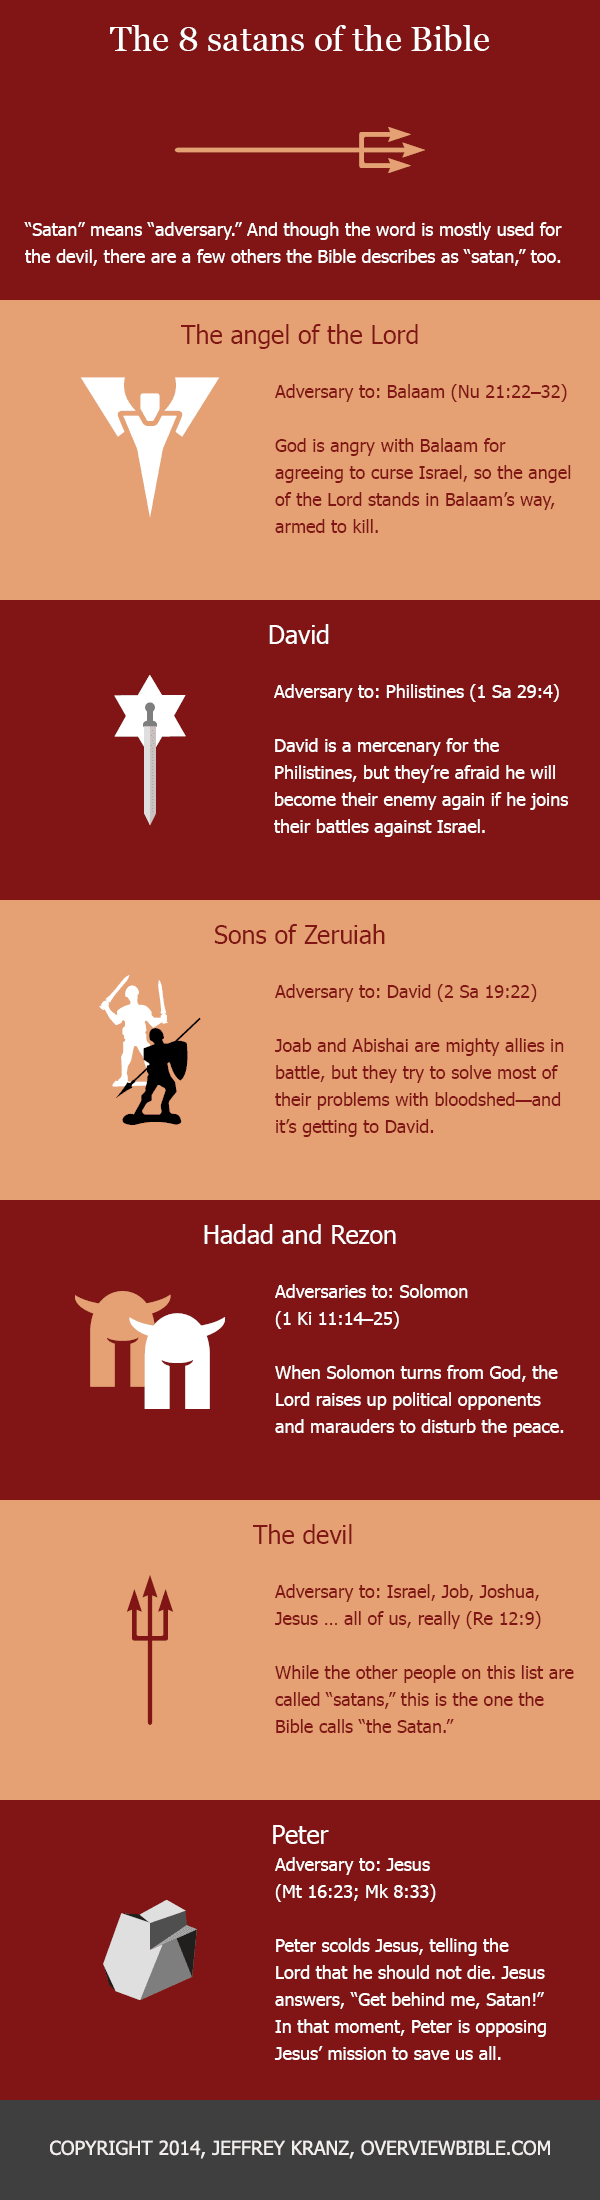 The 8 Satans of the Bible: Infographic